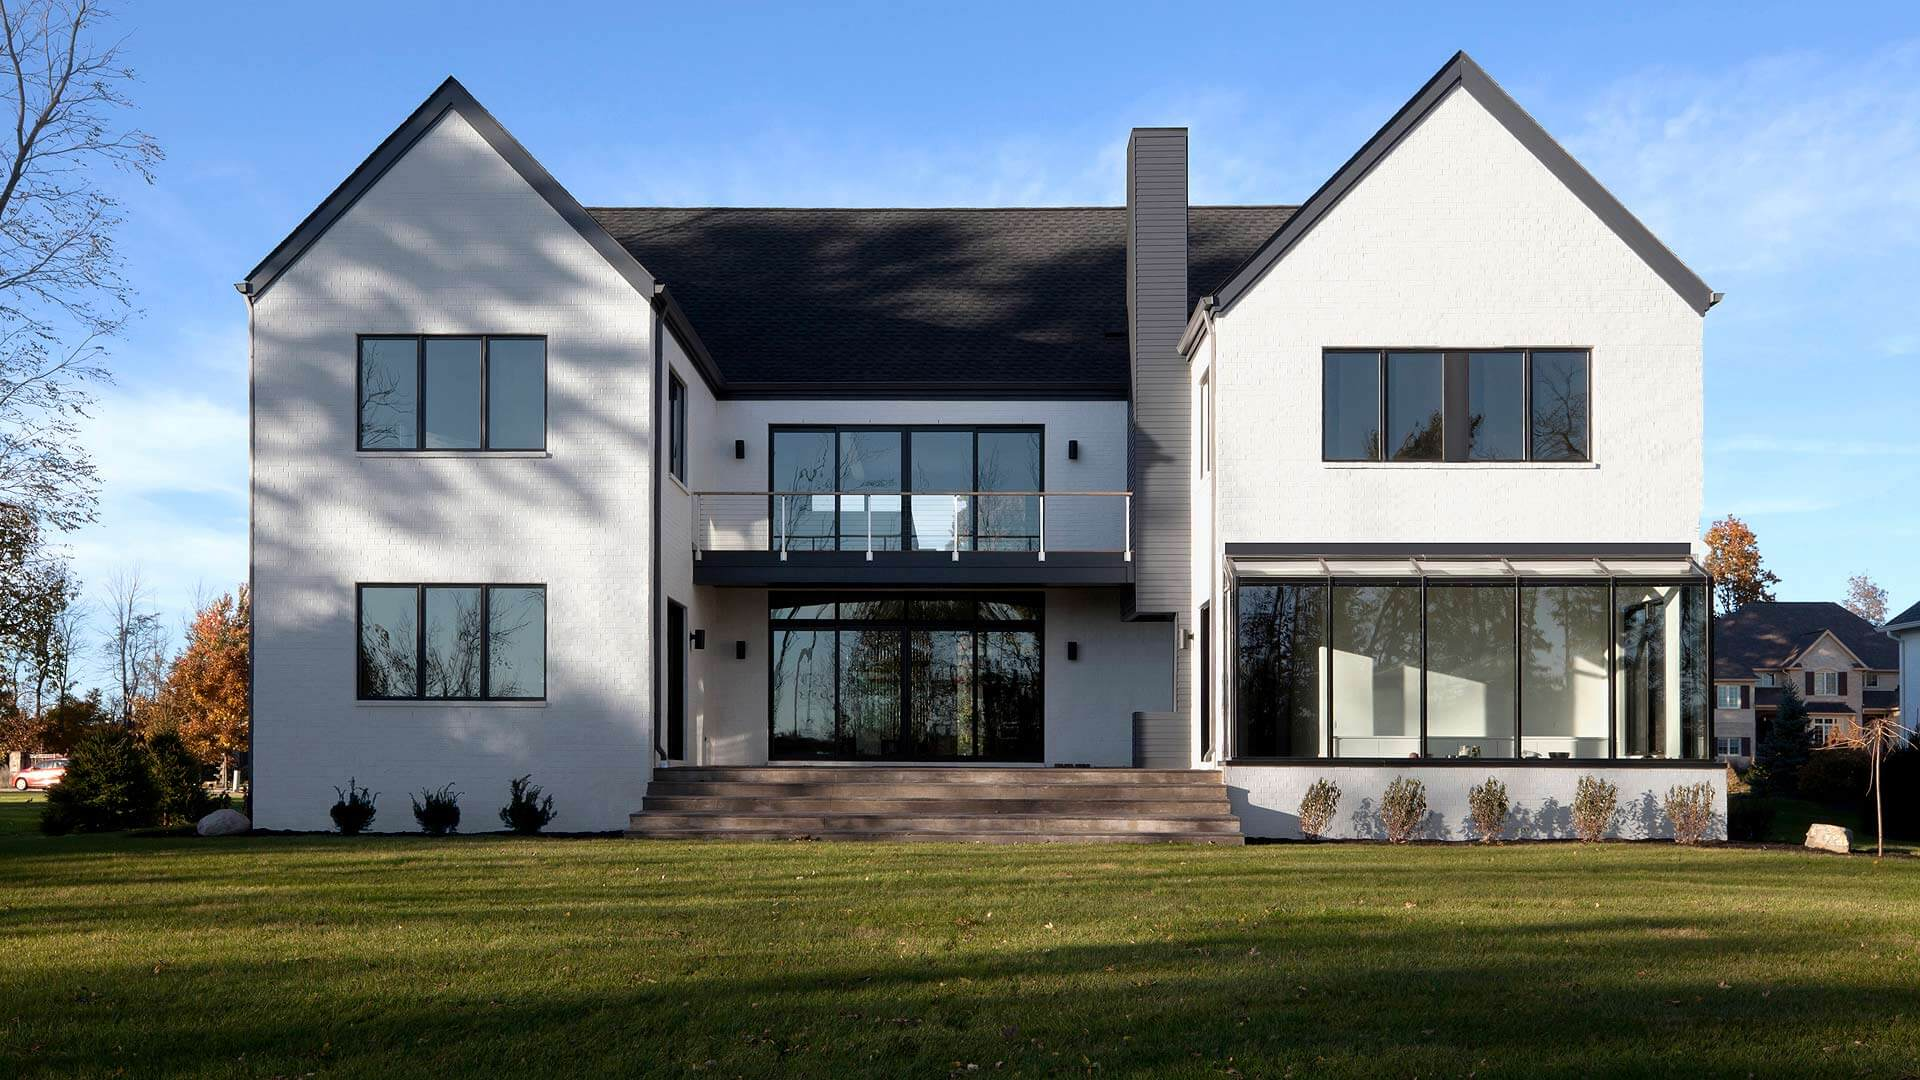 Colonial Modern Complete - Rear exterior elevations features elevated courtyard, cable-rail balcony, grill-station, and sunroom glazing - Towne Oak Estates, Steffe Drive, Carmel, Indiana - Christopher Short, Derek Mills - Indianapolis Architects, HAUS | Architecture For Modern Lifestyles